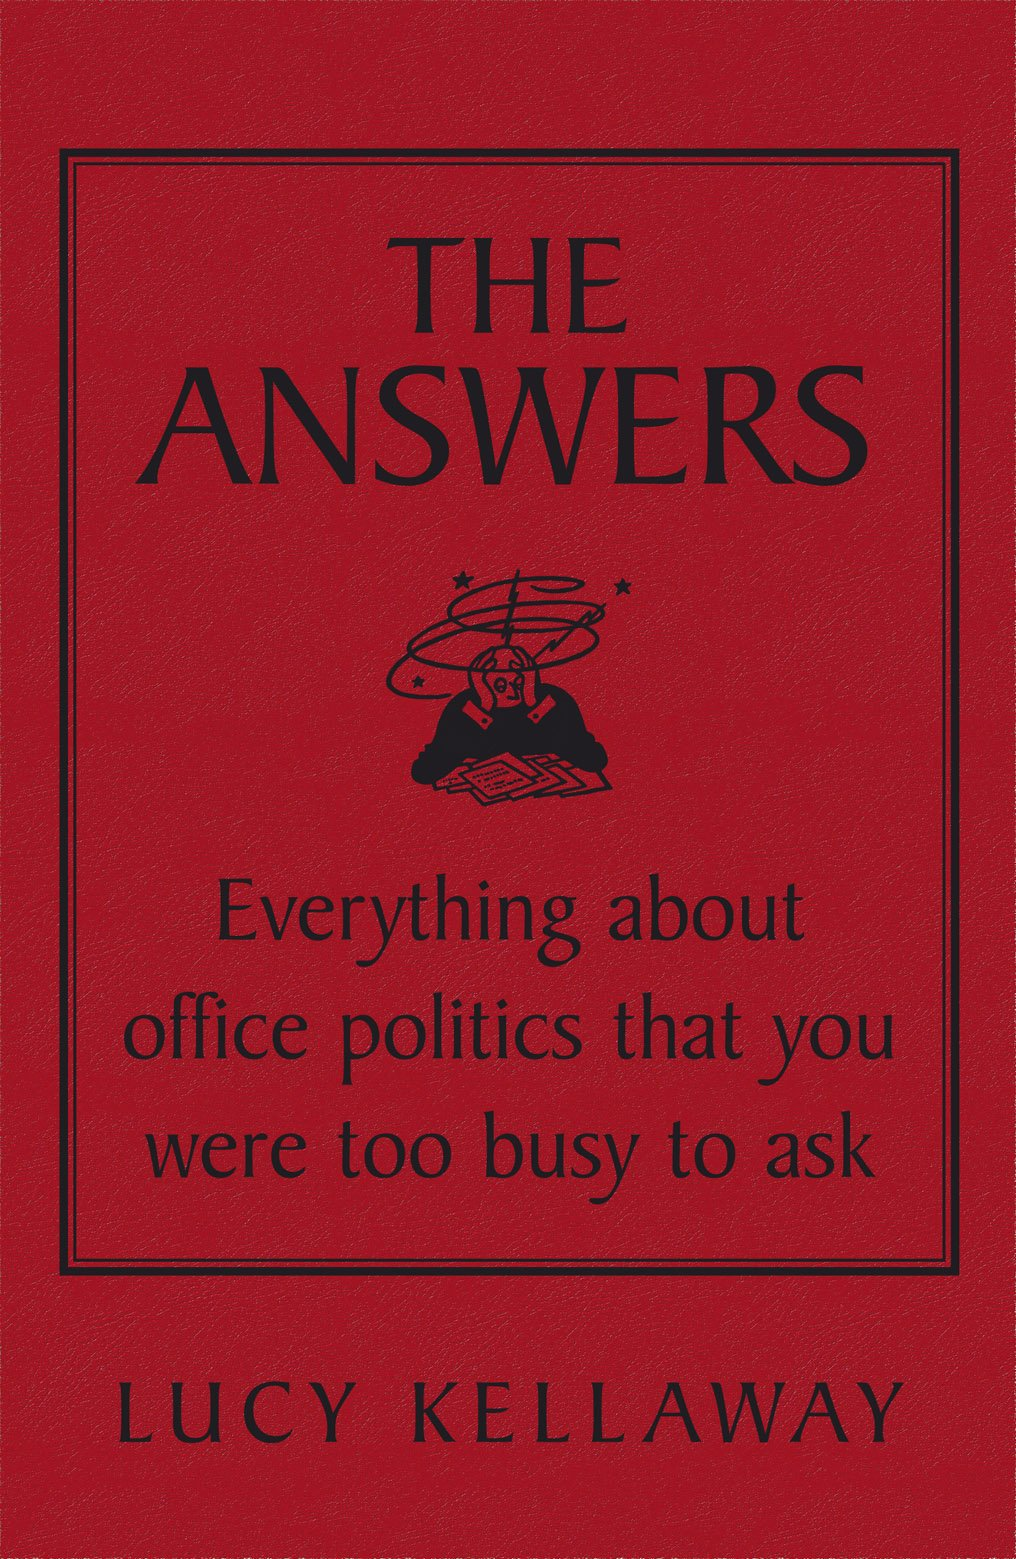 The Real Office: All the office questions you never dared to ask ebook